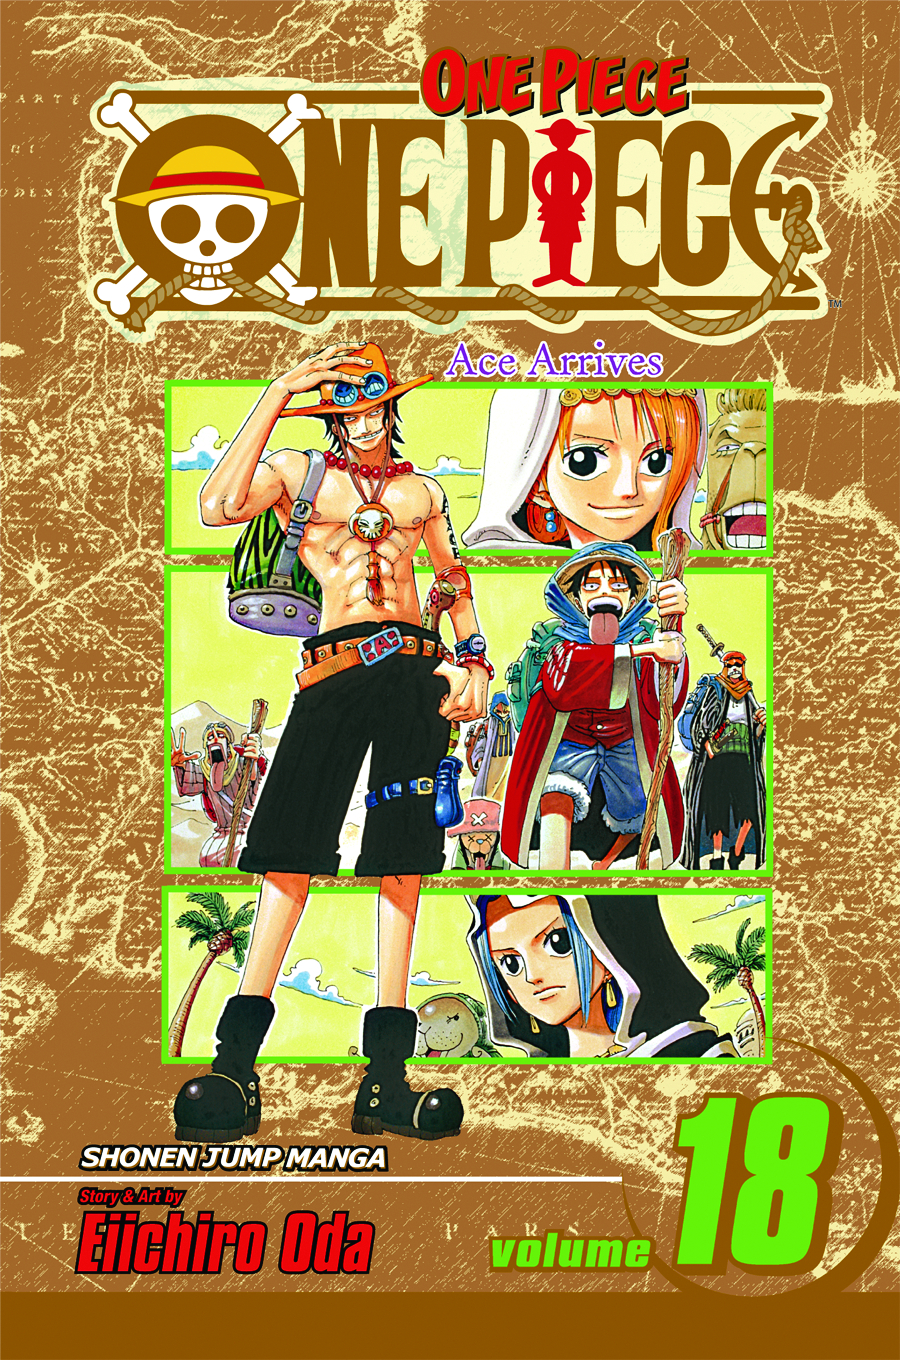 (USE MAY138177) ONE PIECE GN VOL 18